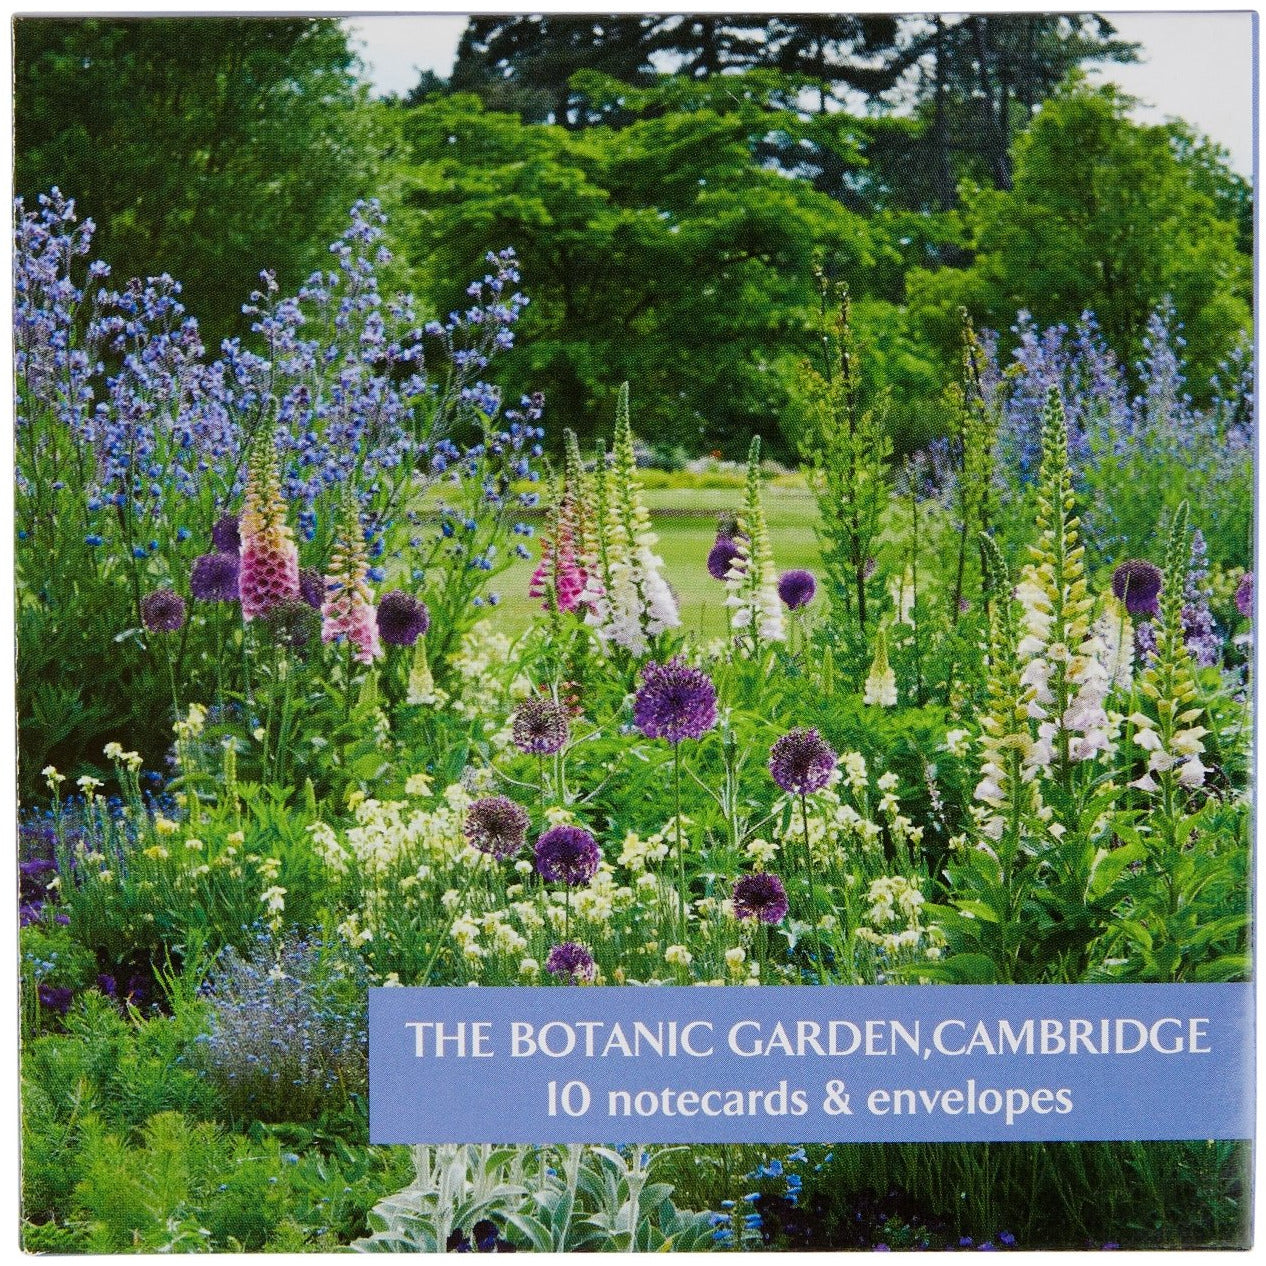 Featured image for the project: The Botanic Garden, Cambridge - Notecard pack